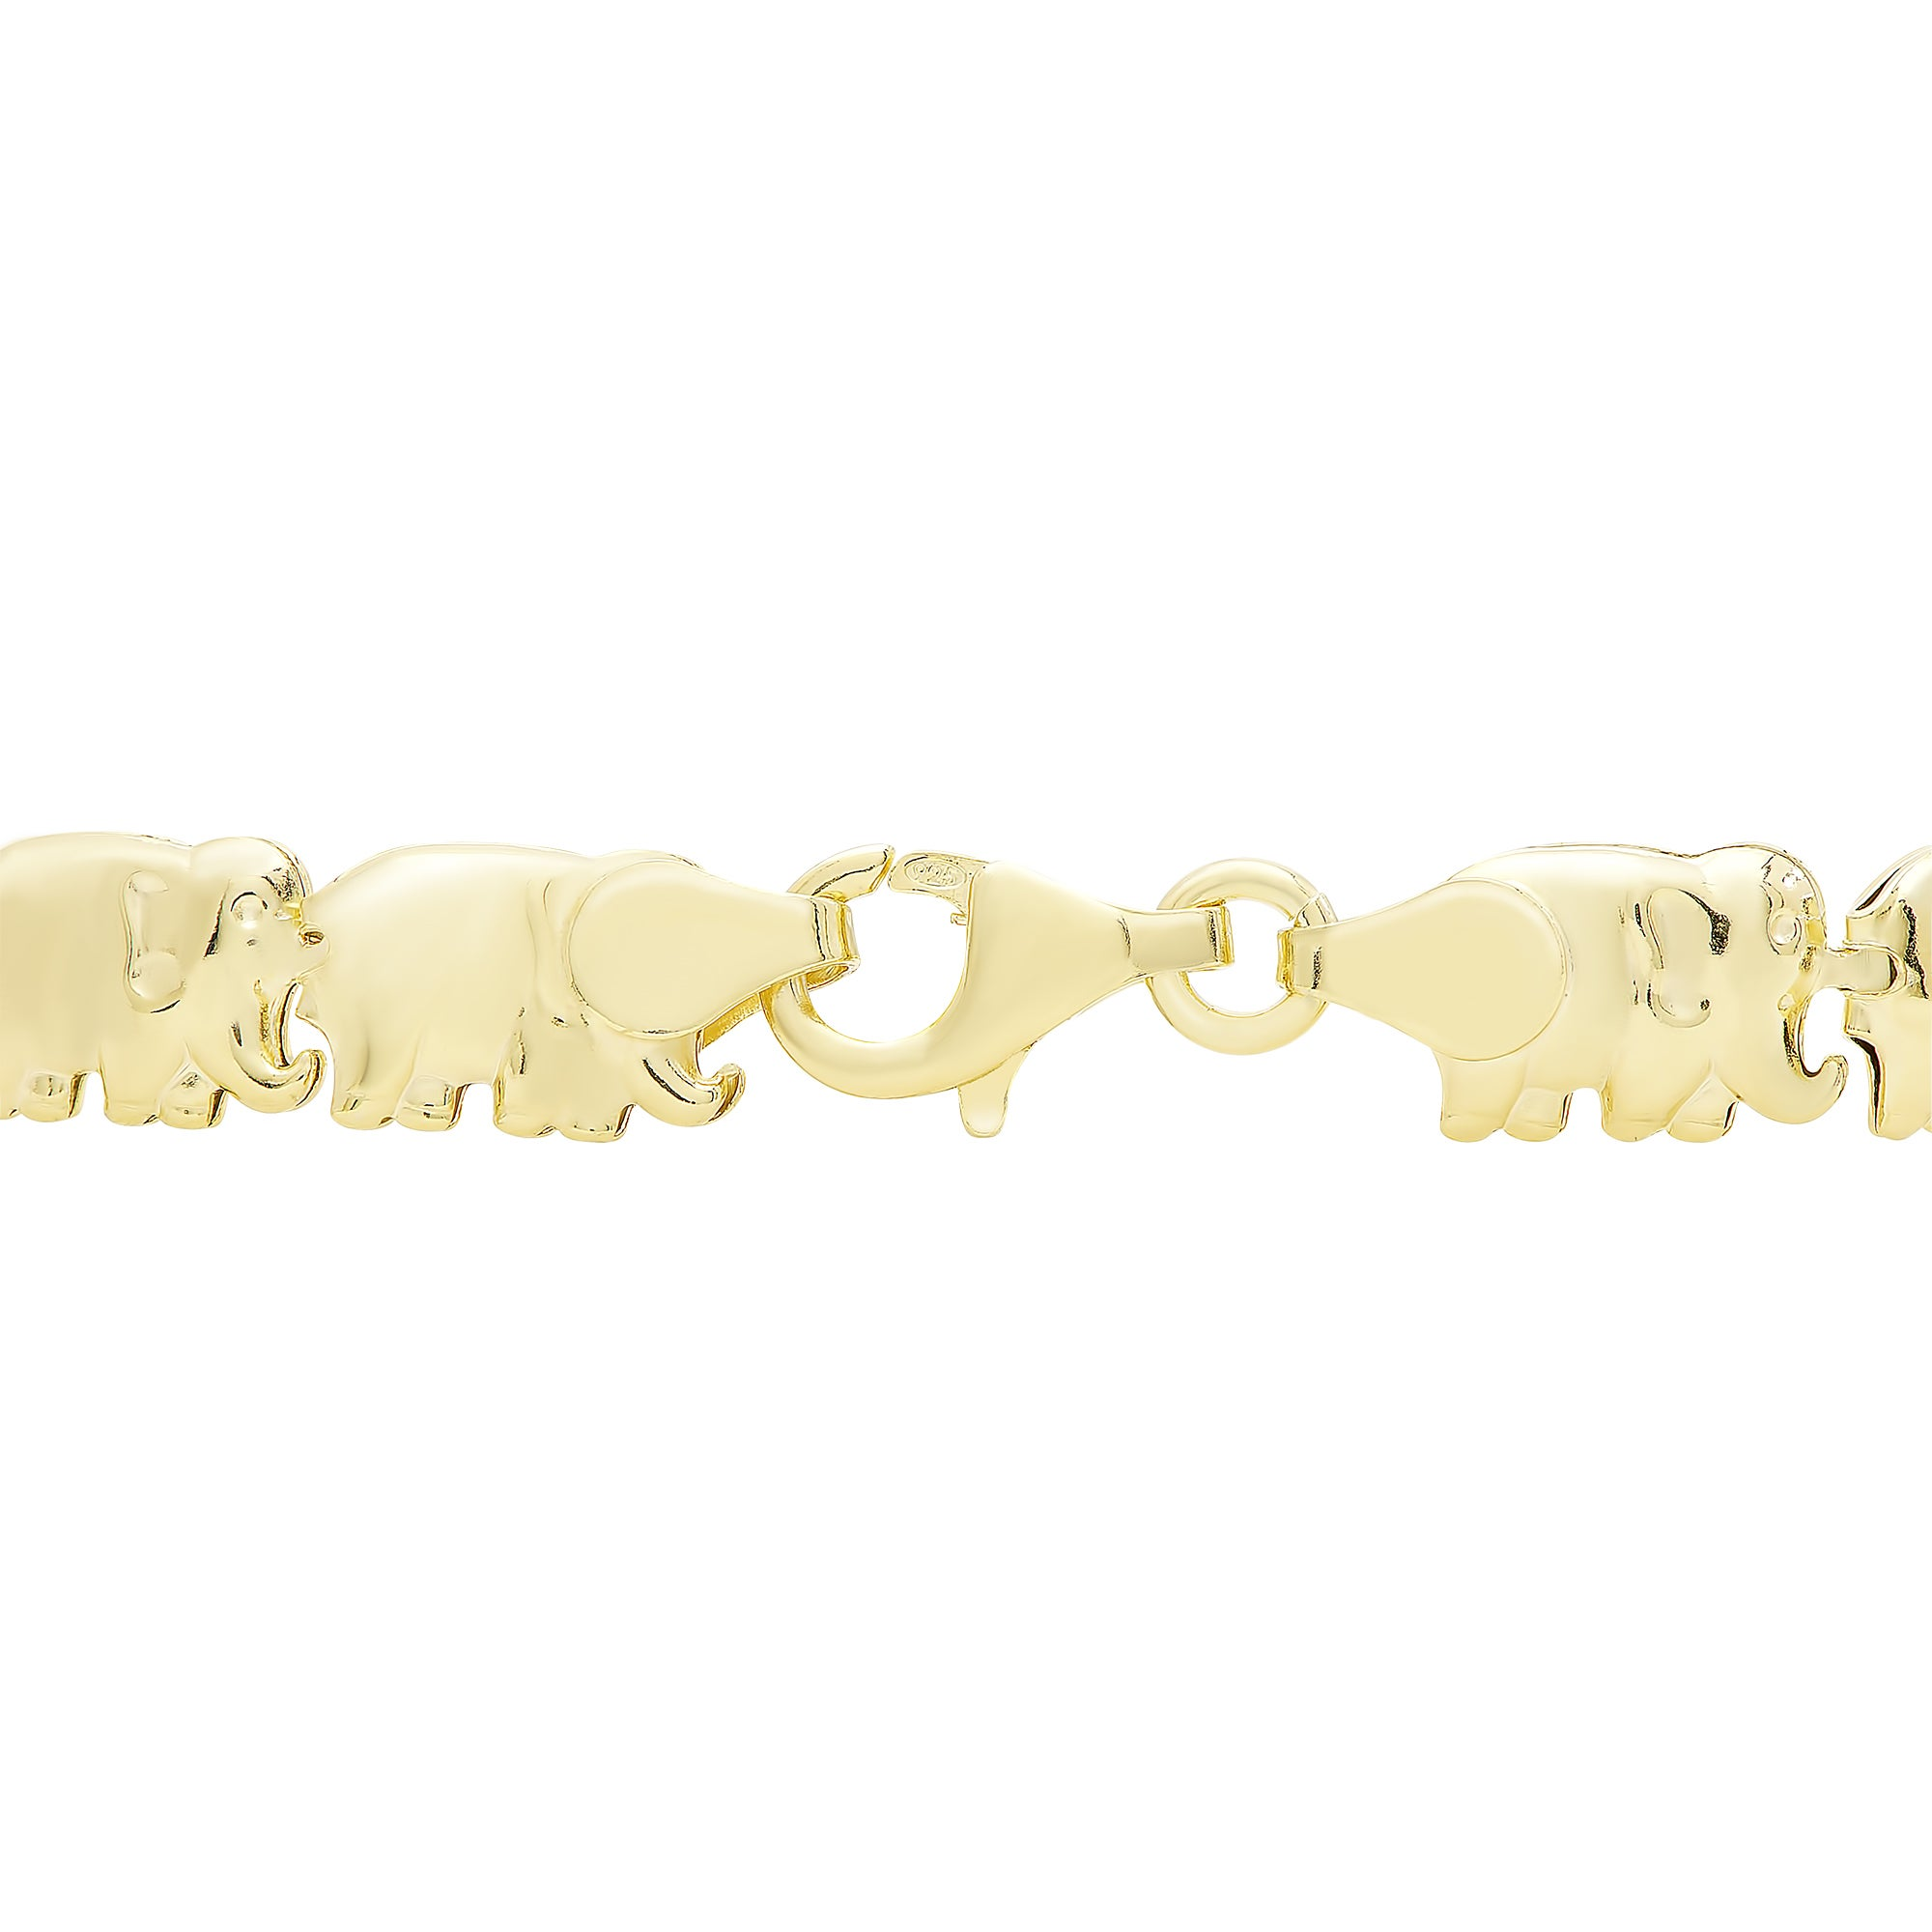 m hand brace bracelet design d beautiful jewellery crafted product gold heart